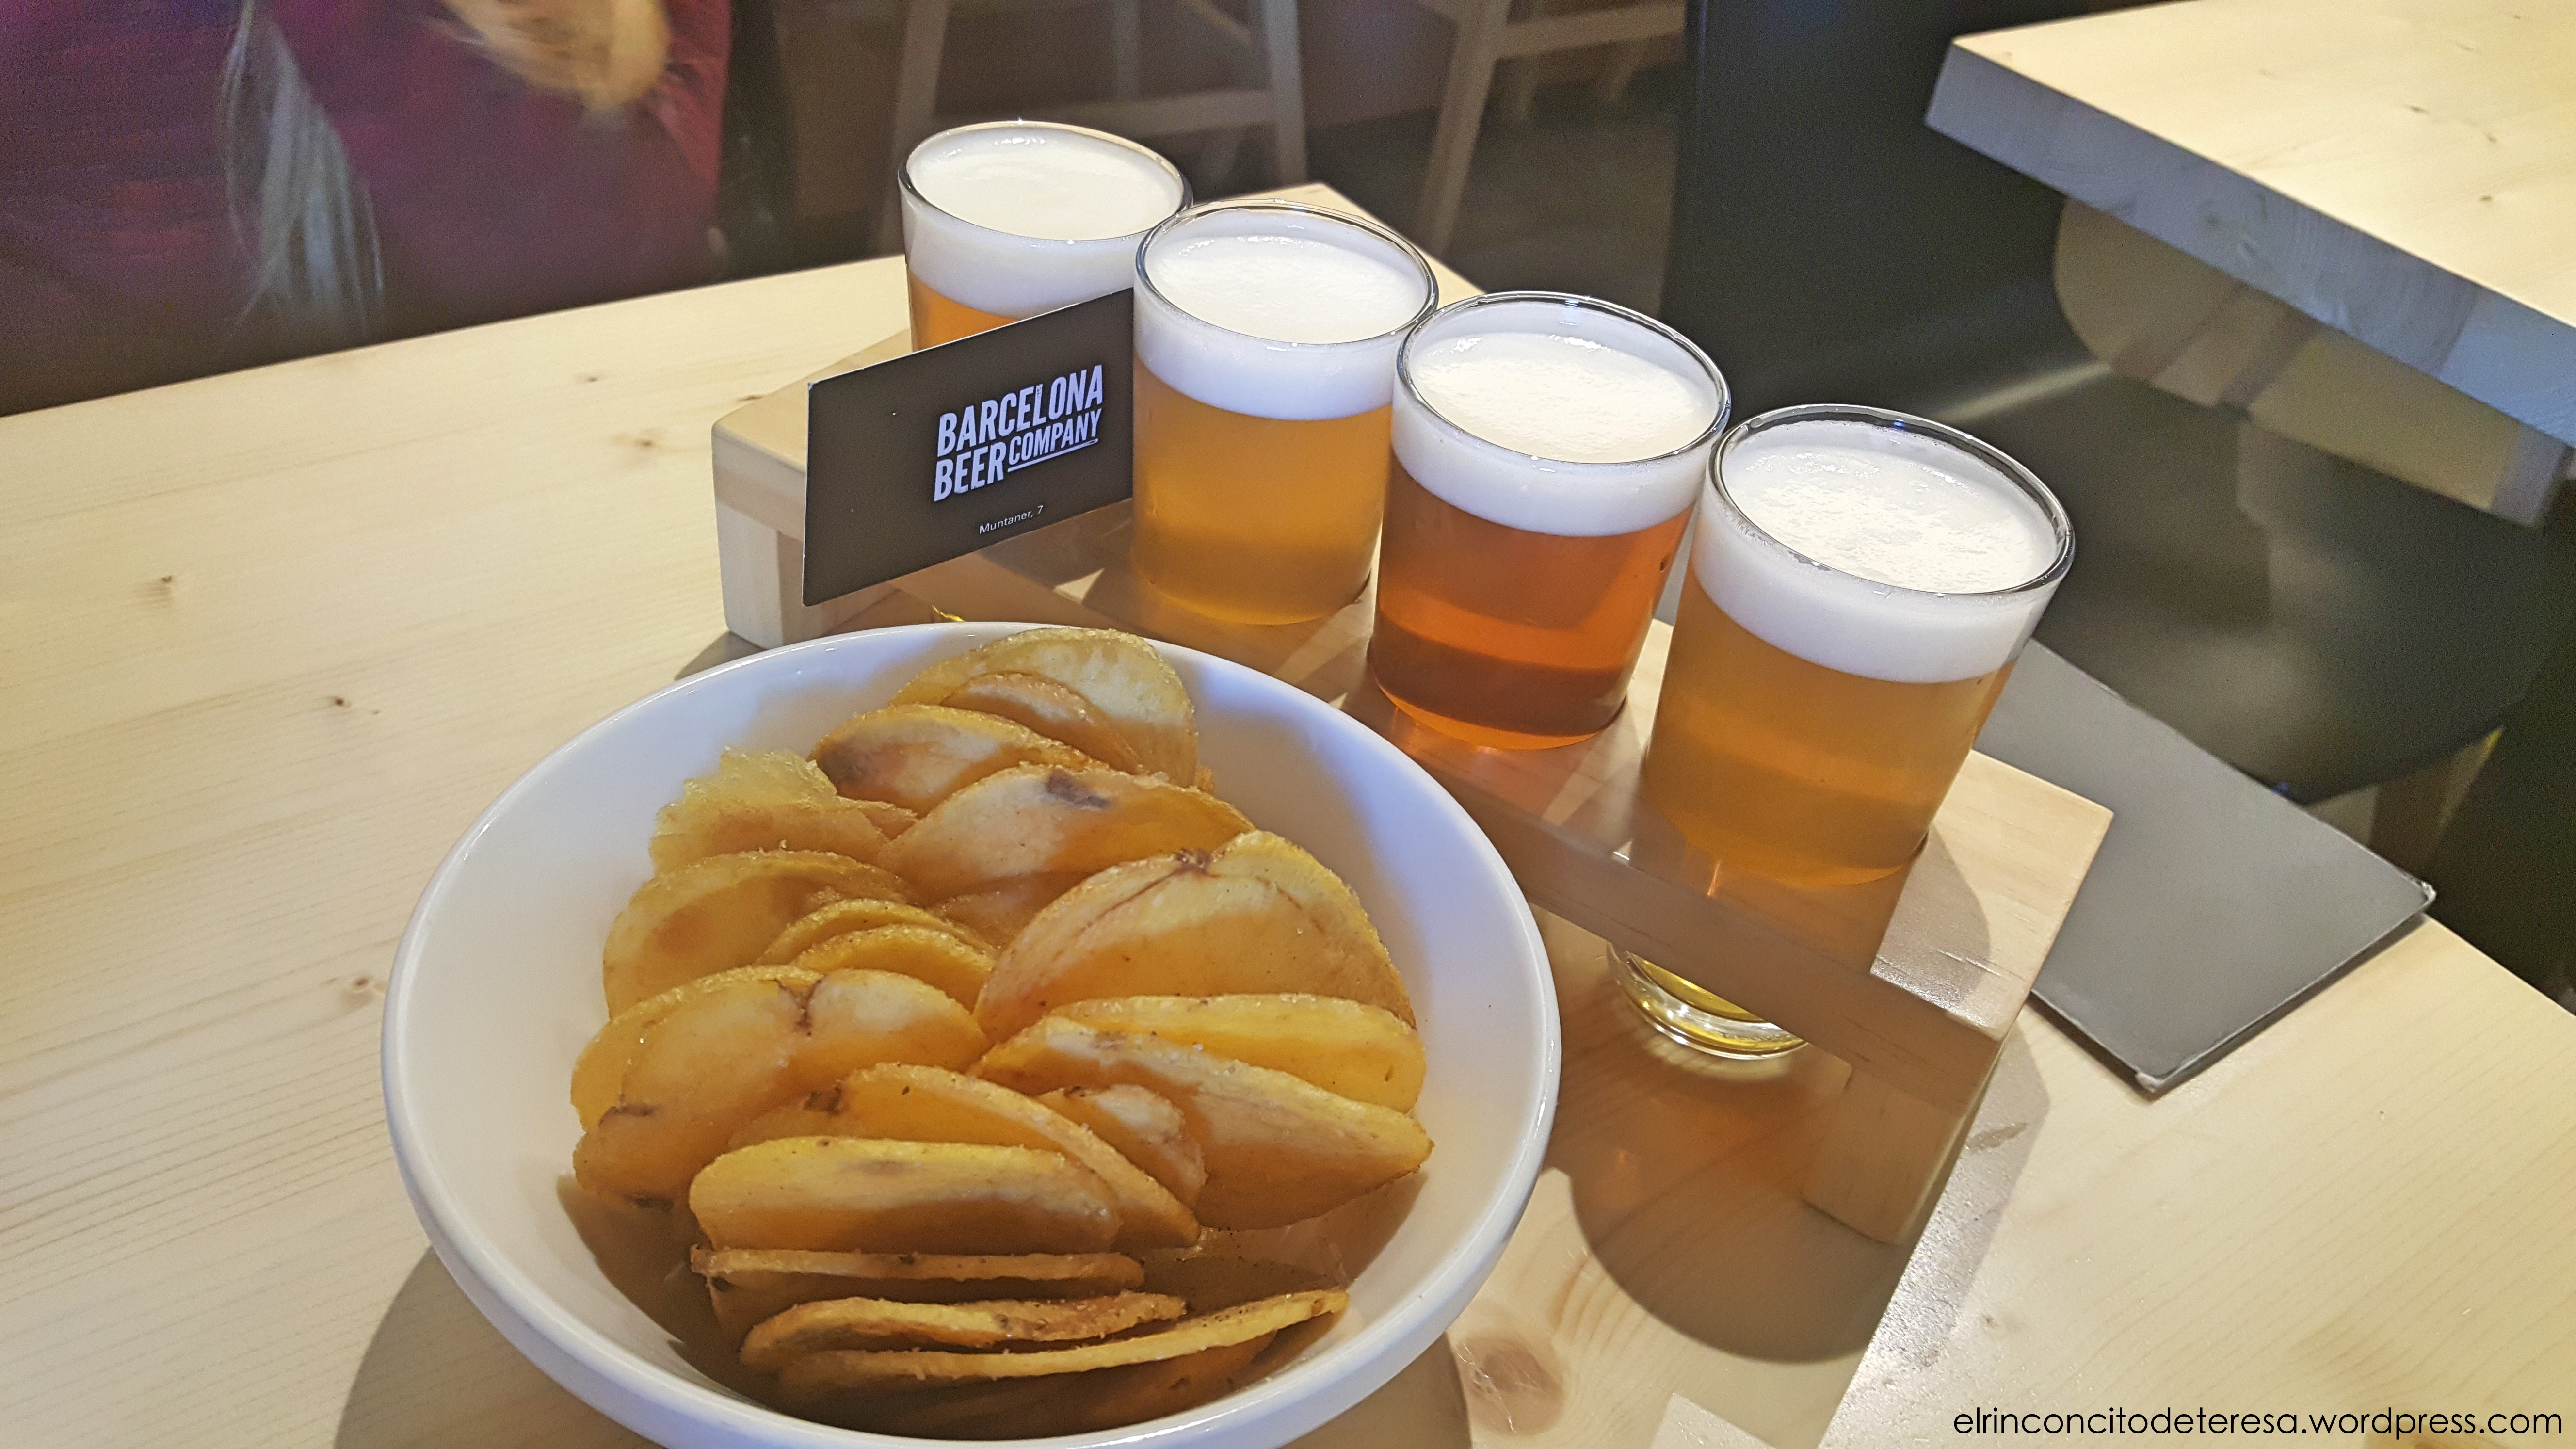 barcelona-beer-company-patatas-chips